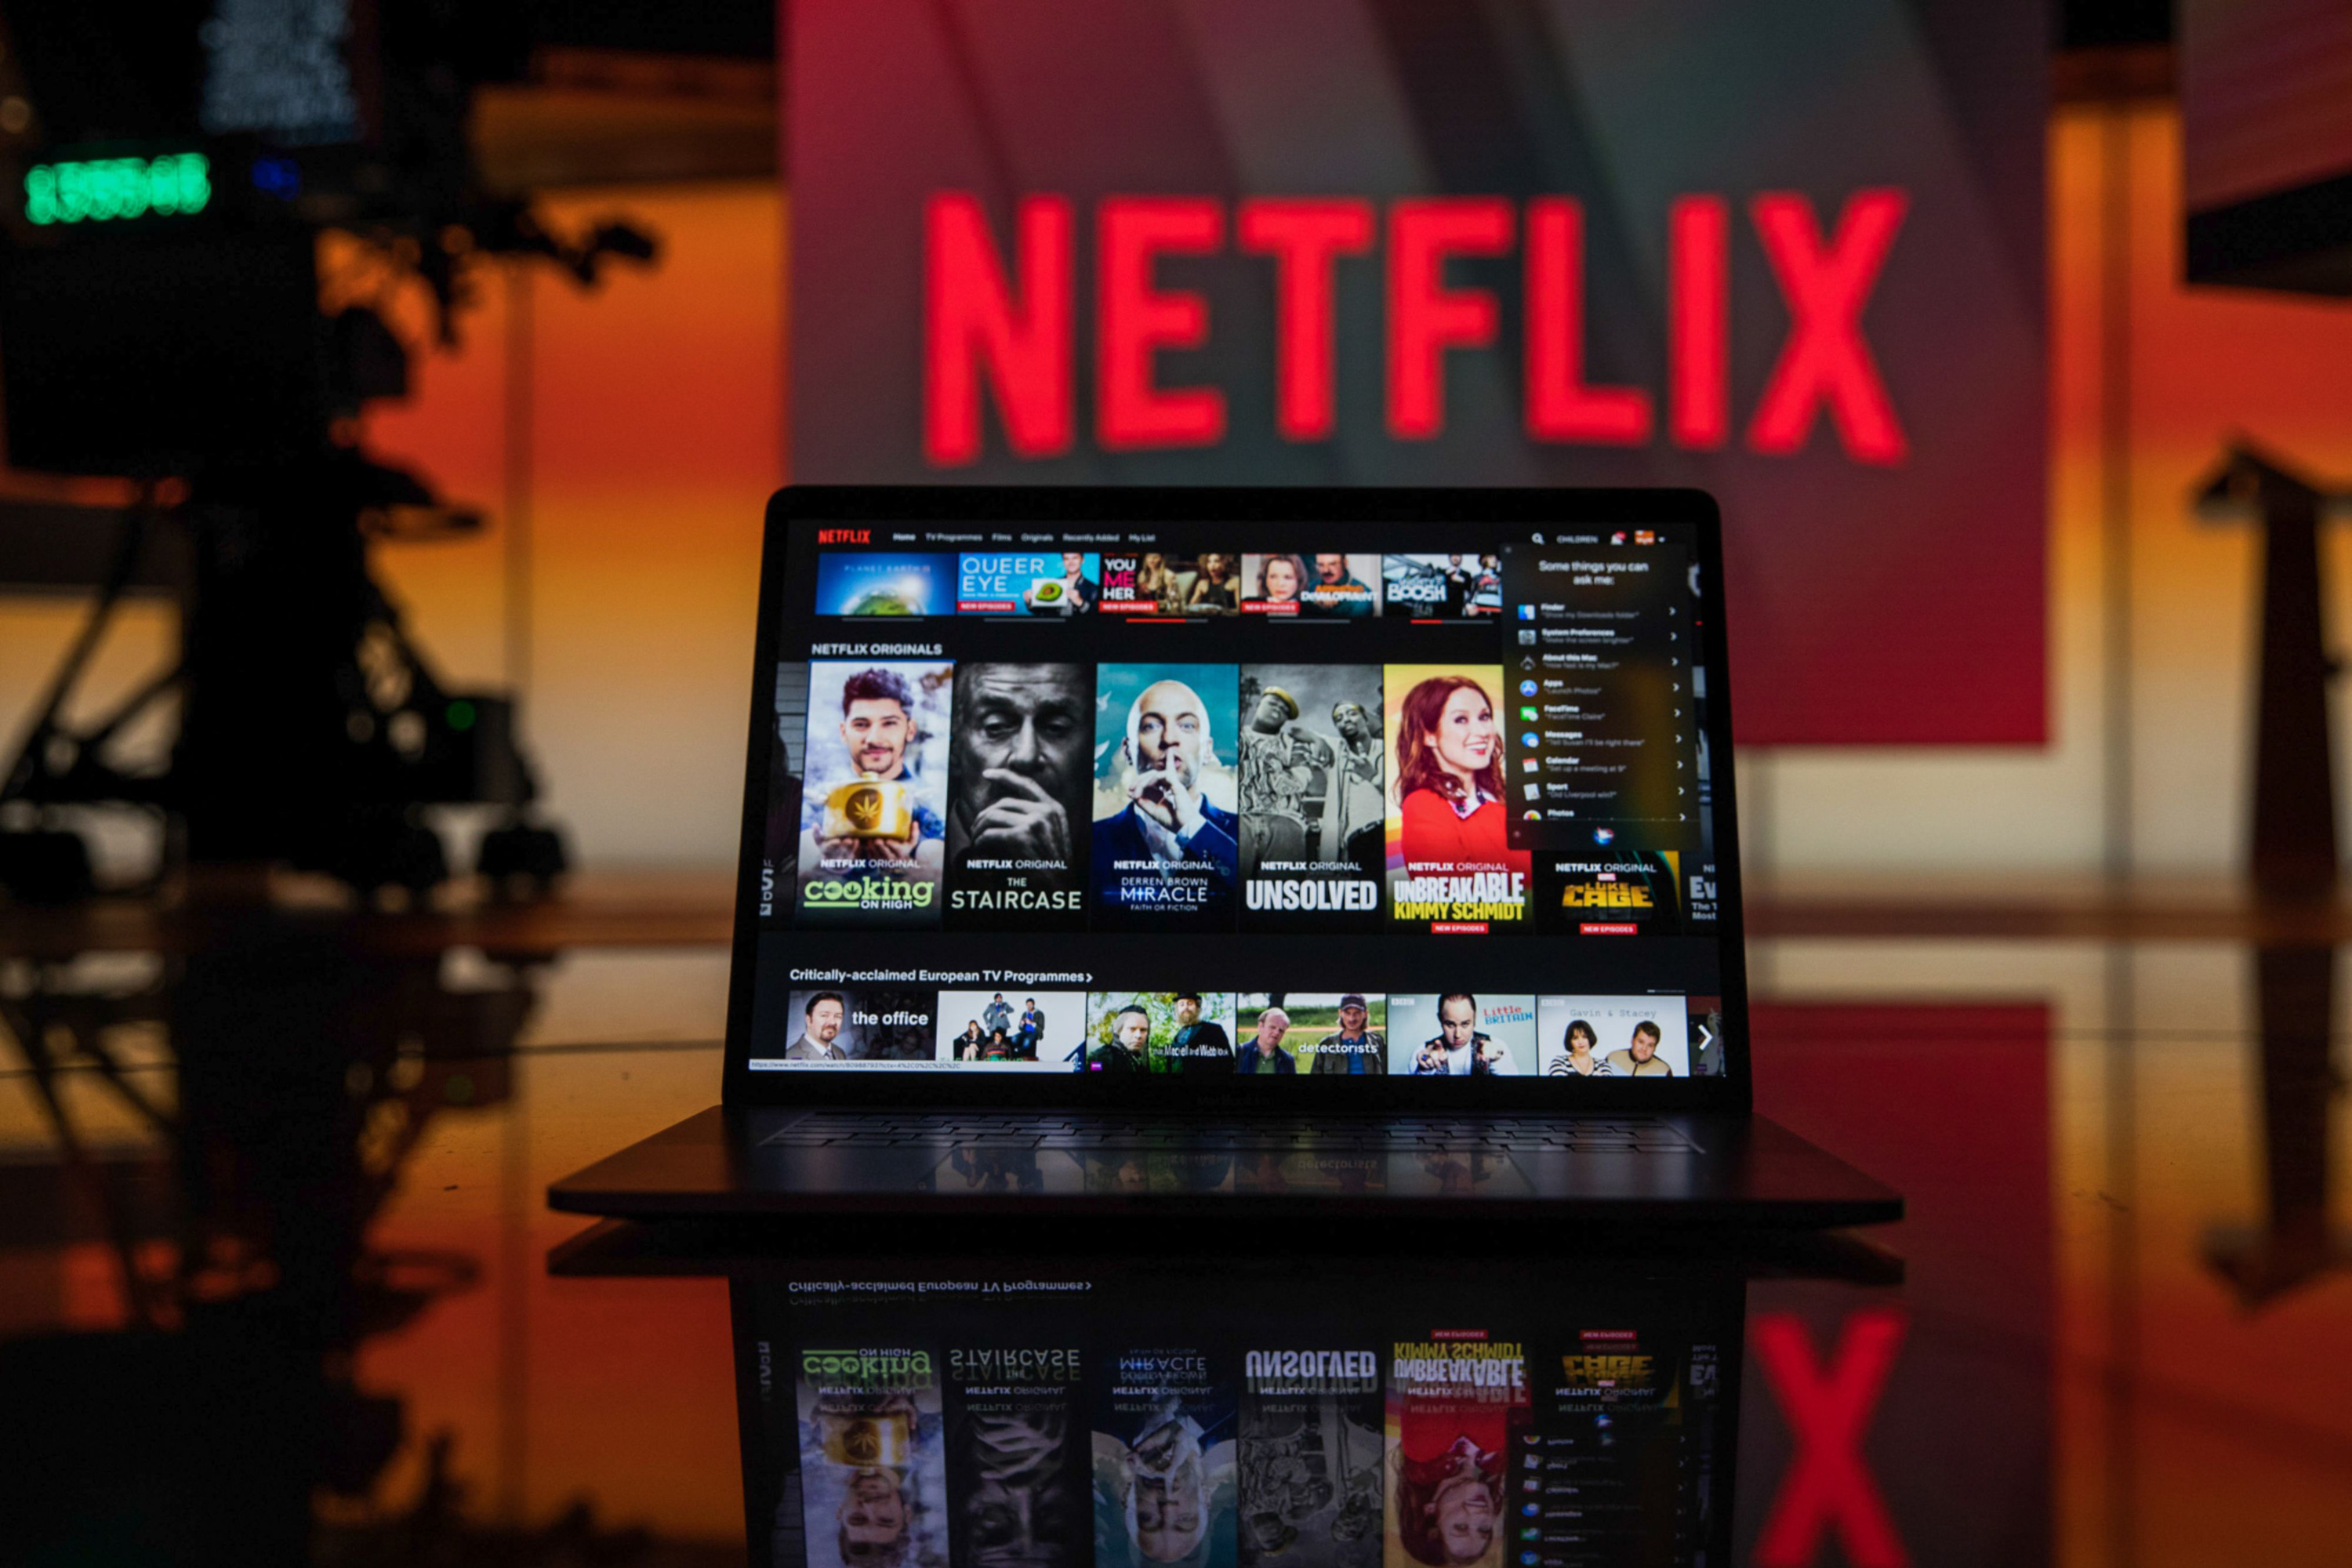 Netflix must add ads or lose millions of users, Needham says